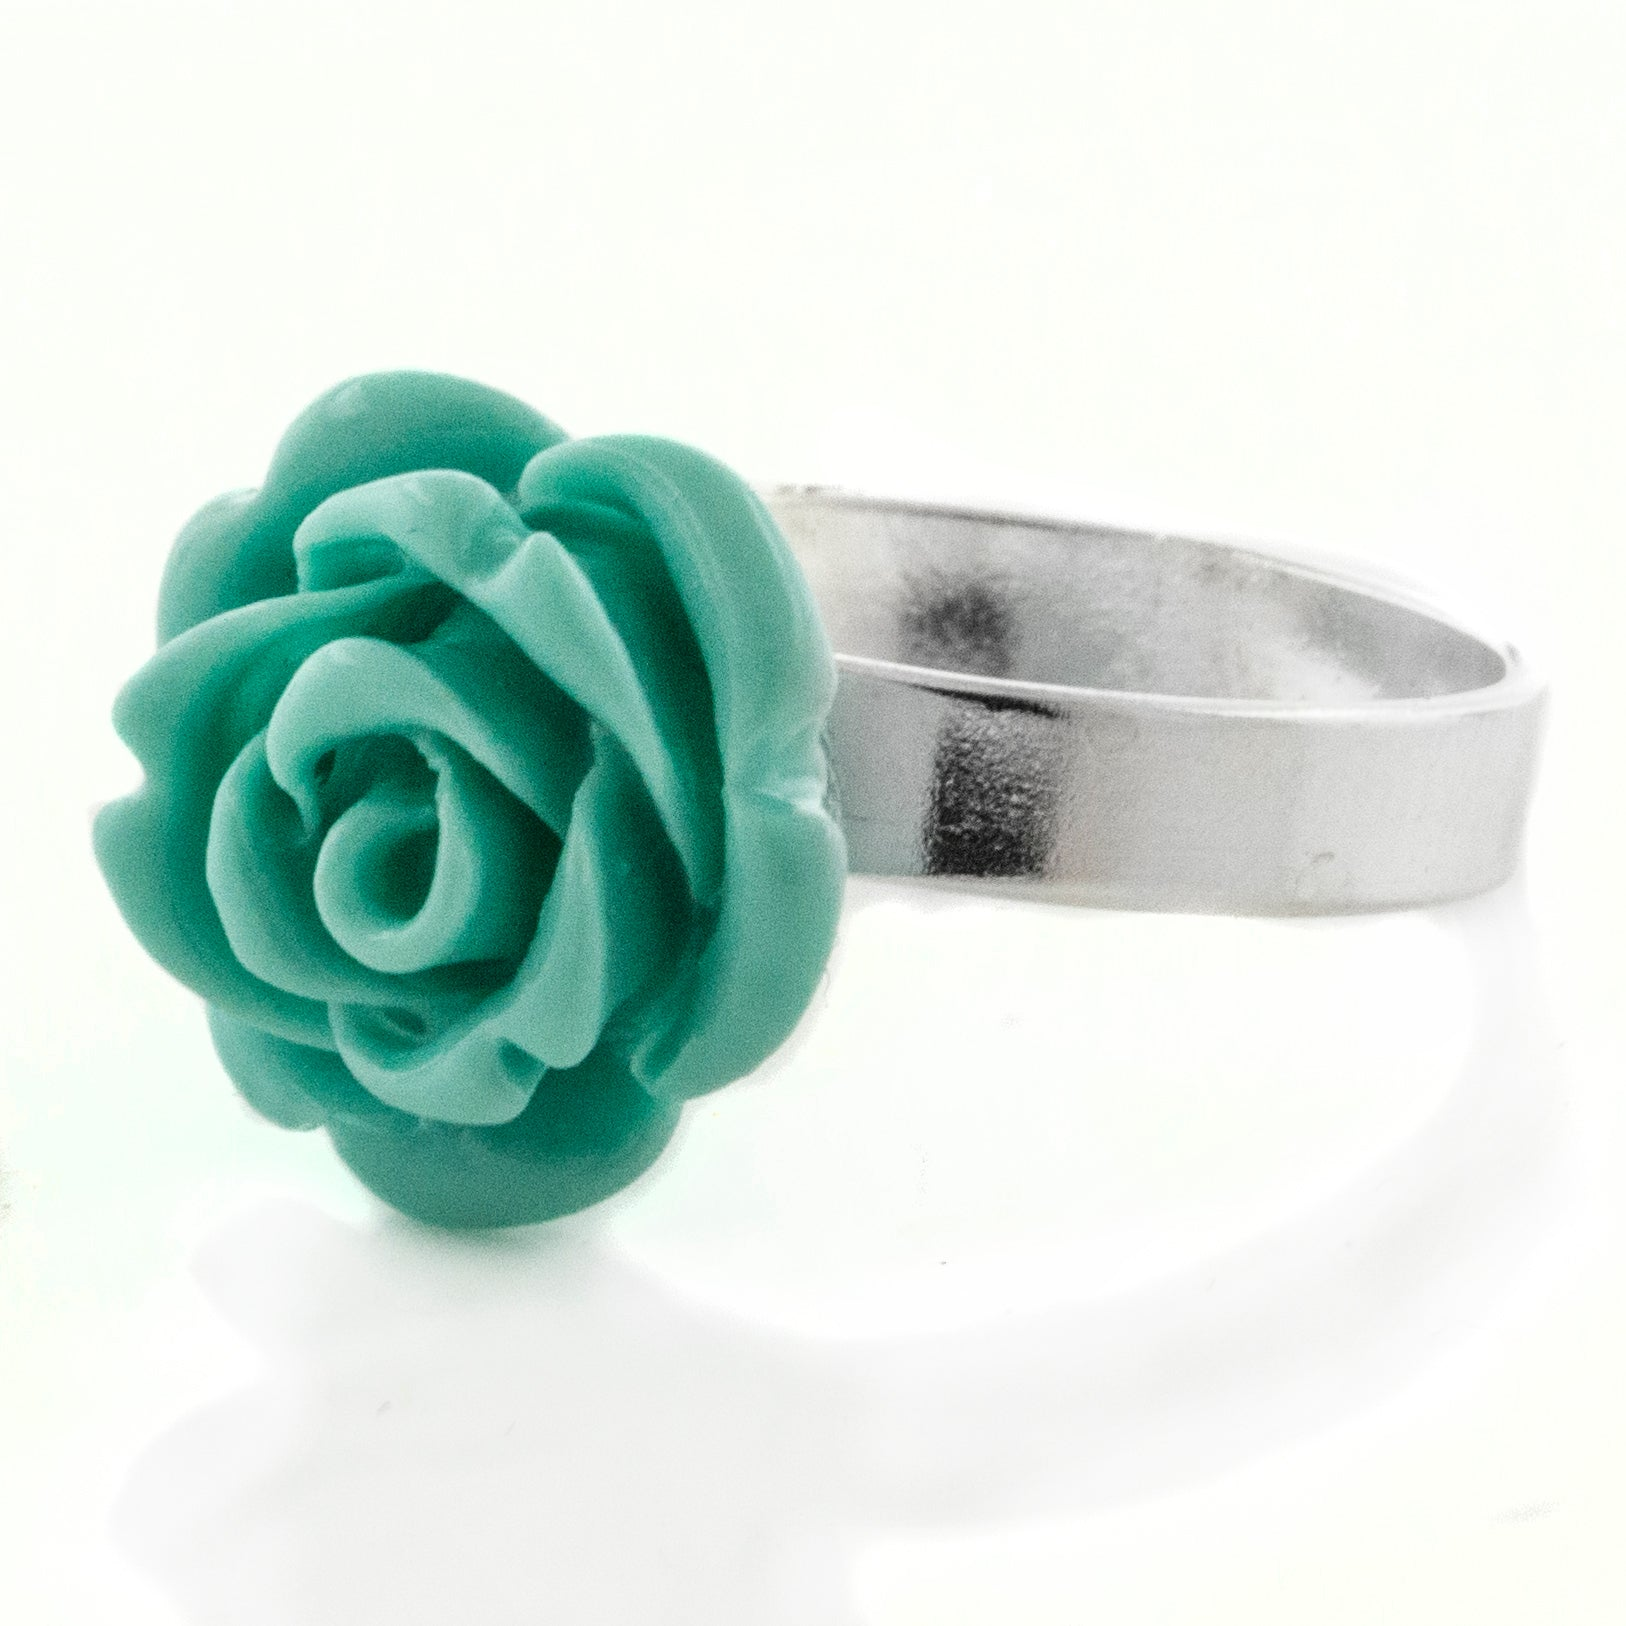 Carved Rose of Beauty 3D Sterling Silver Turquoise Flower Ring - Silver Insanity